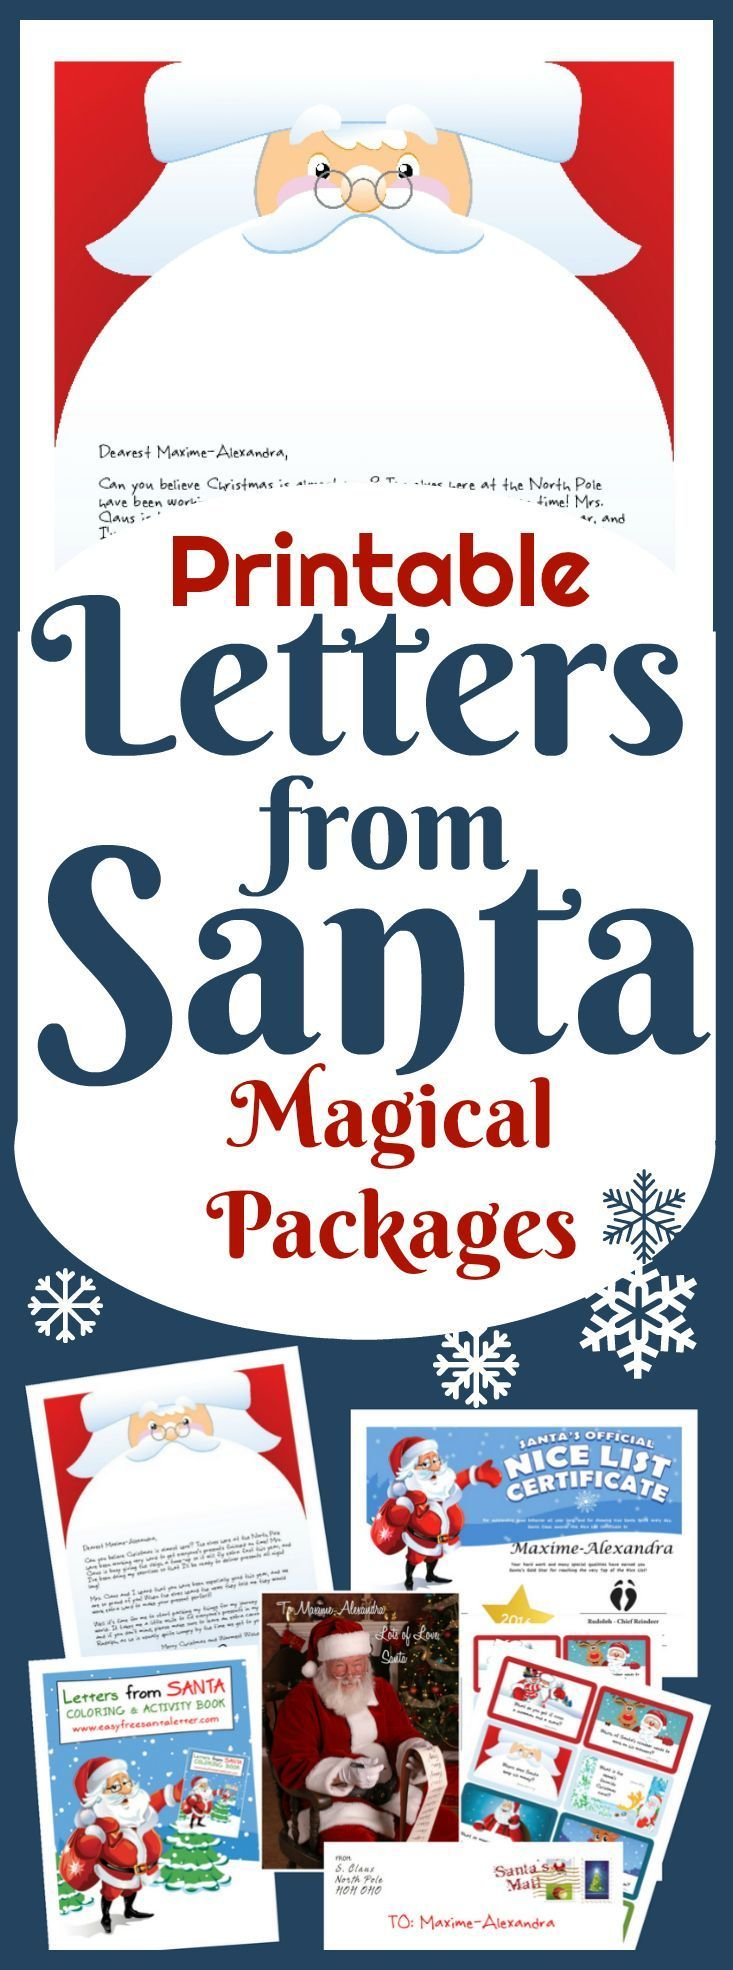 Has Santa been too busy to write back? Have a lovely printable Santa Letter in your hands in less than 5 miinutes! 20+  designs to choose from. Free Letters from Santa too! And quicker than magic Elf dust!